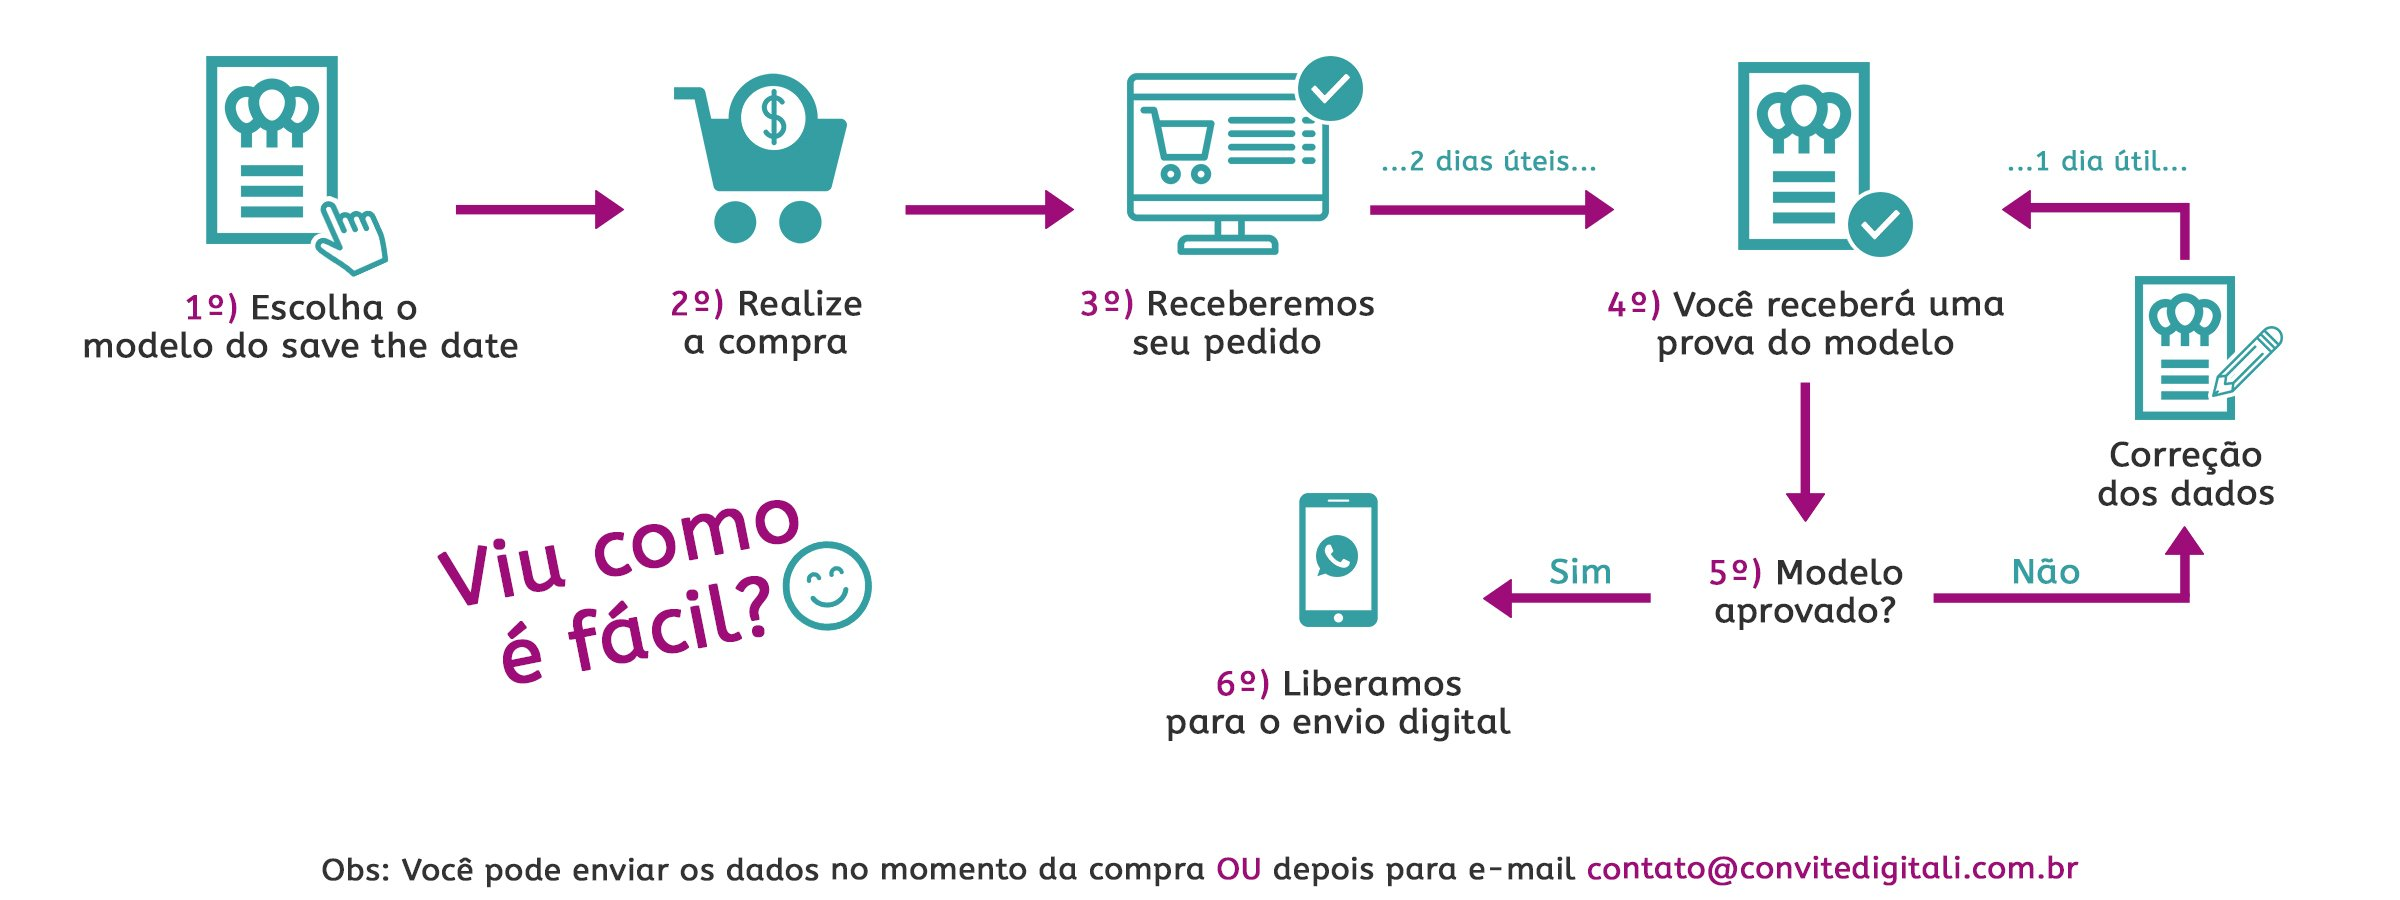 Save-the-date-digital-15-anos-realeza-whatsapp-imprimir